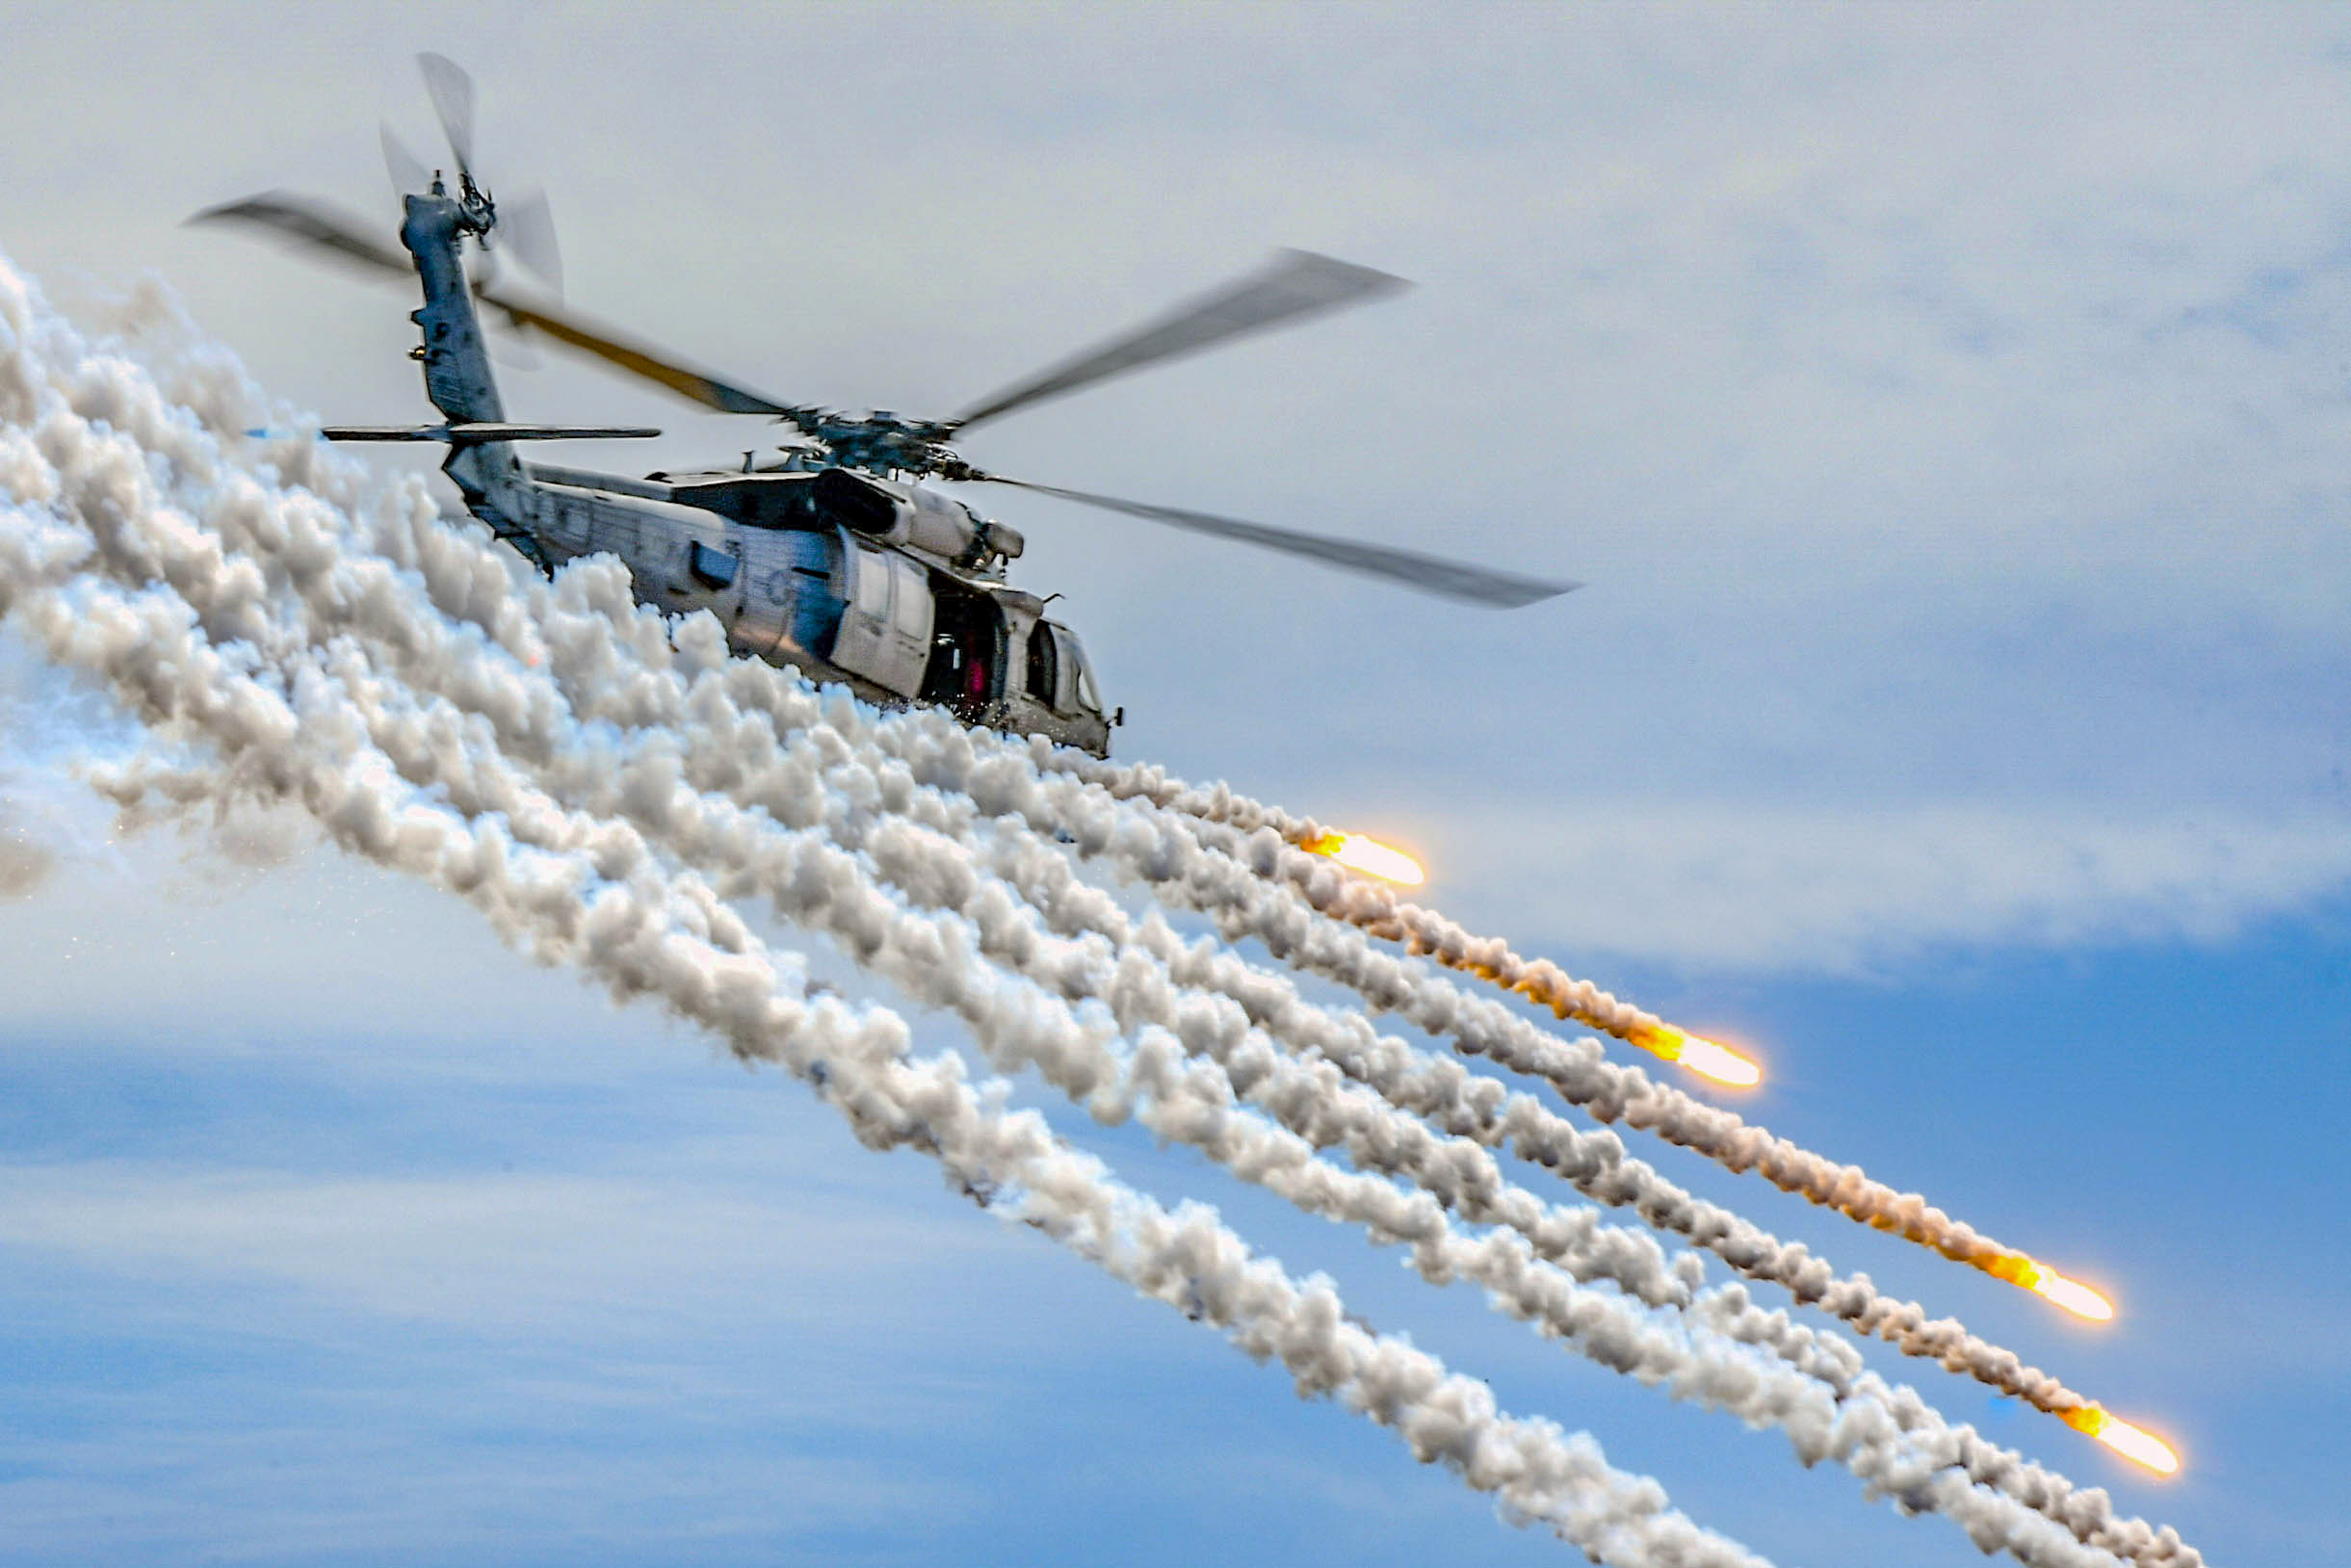 An MH-60S Sea Hawk, assigned to the Indians of Helicopter Sea Combat Squadron (HSC) 6, fires flares alongside the aircraft carrier USS Theodore Roosevelt (CVN 71) during an air power demonstration. Theodore Roosevelt is currently deployed in the Pacific Ocean. (U.S. Navy photo by Mass Communication Specialist Seaman Michael A. Colemanberry/Navy)